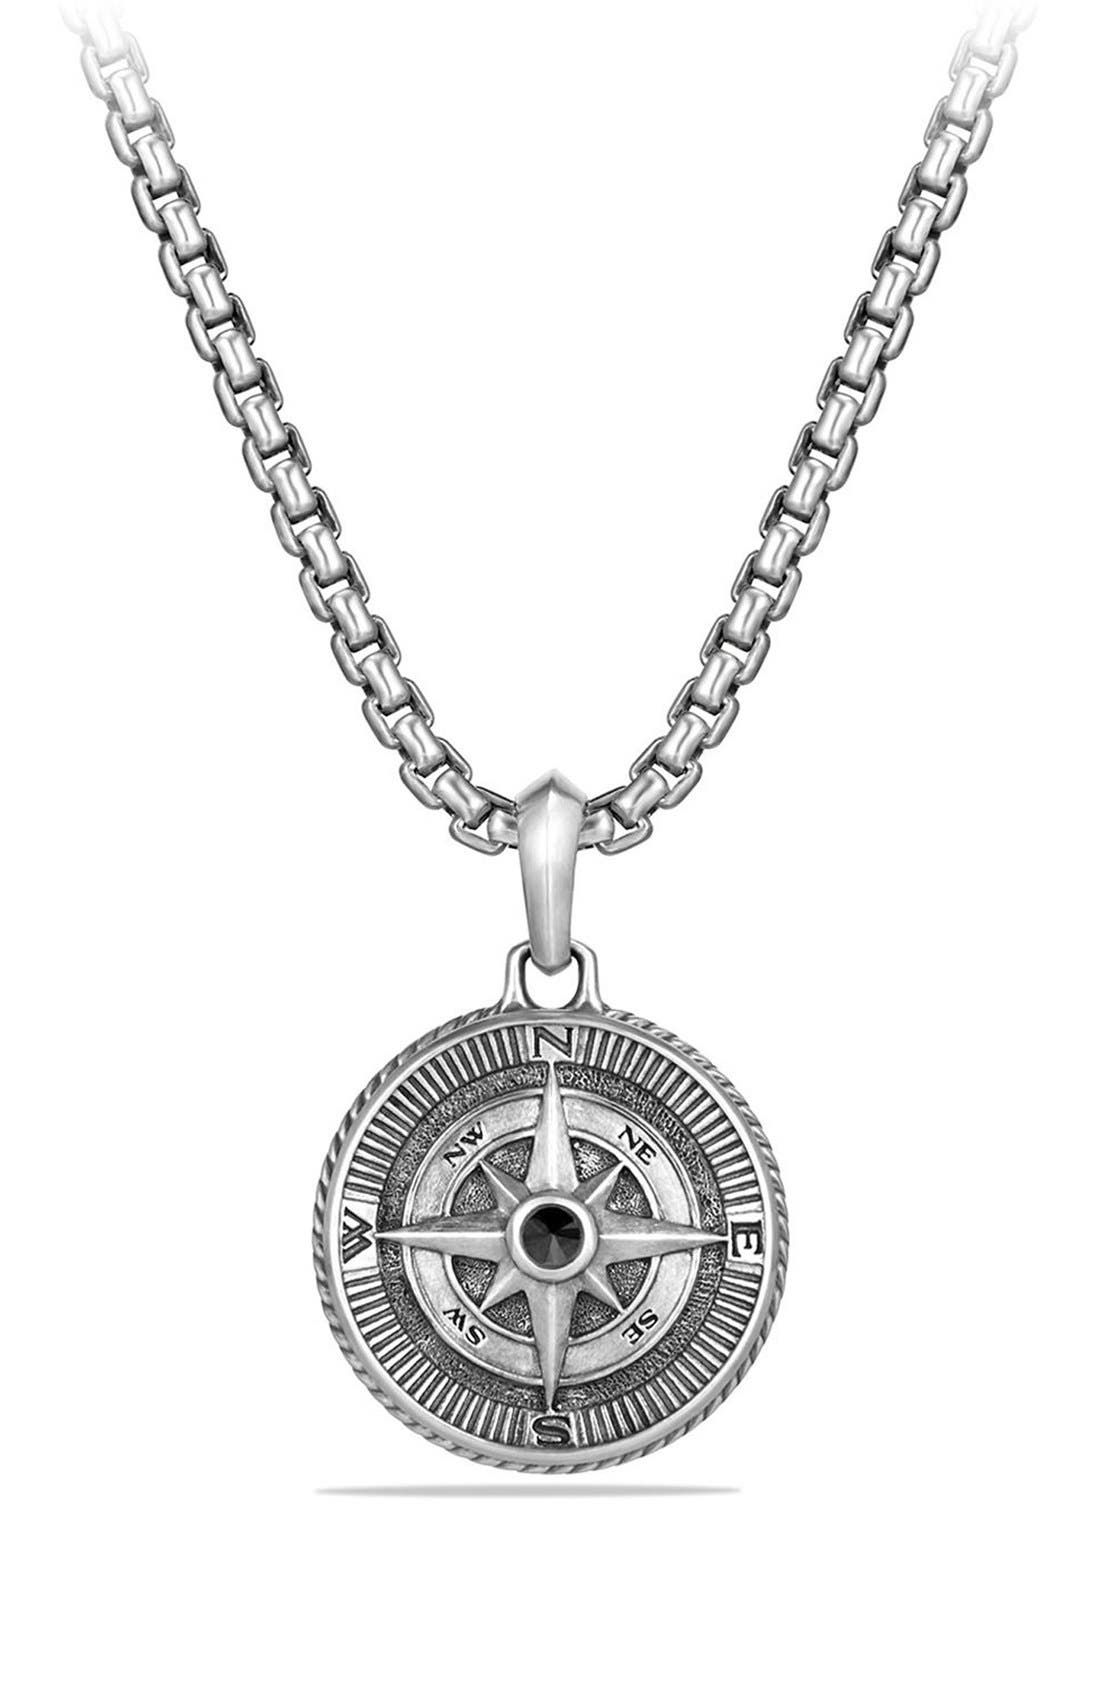 DAVID YURMAN Maritime Compass Amulet with Black Diamond